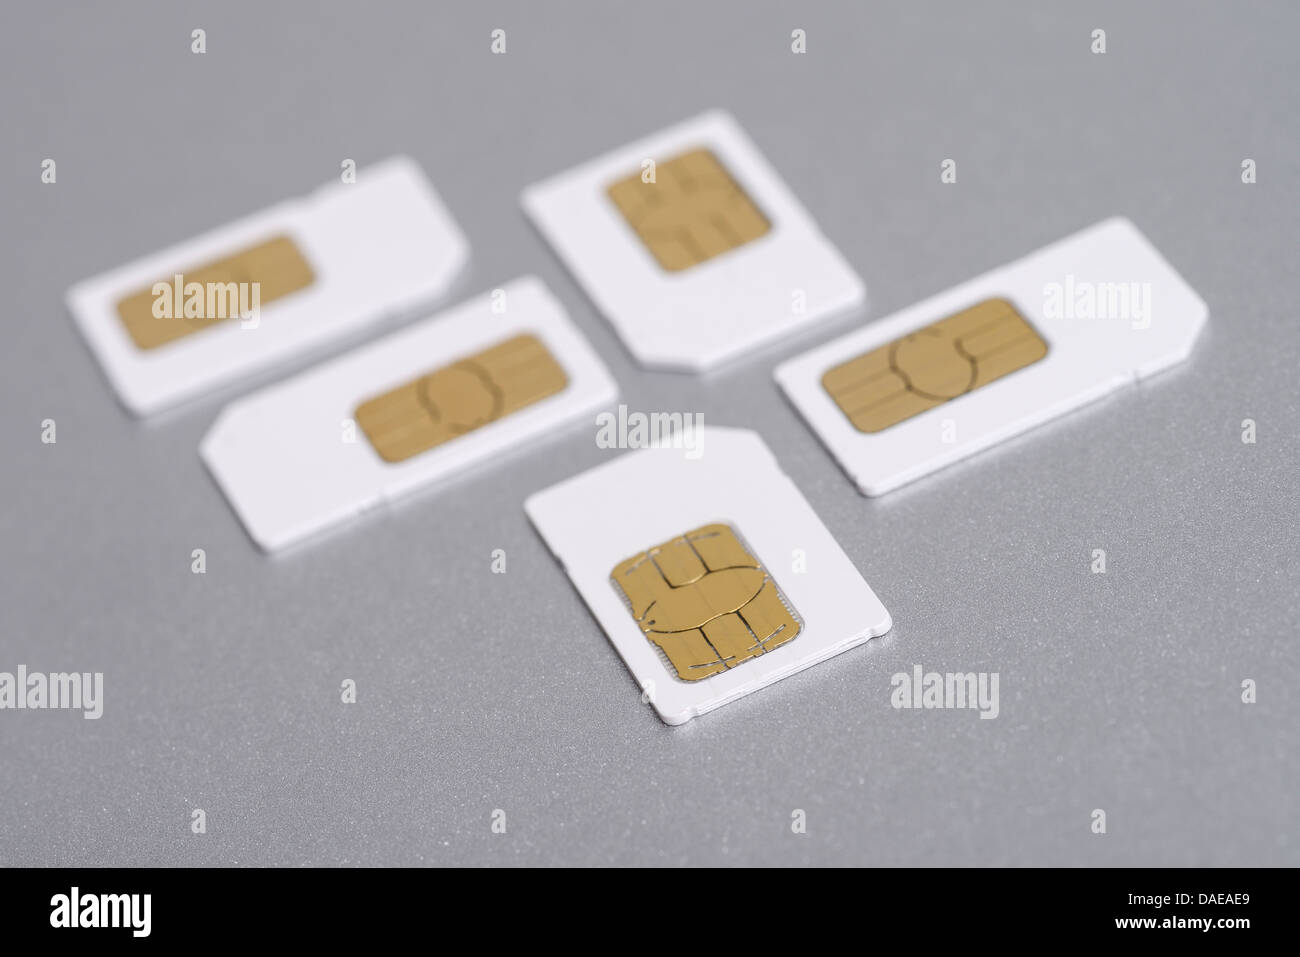 Five mobile phone full size SIM cards - Stock Image